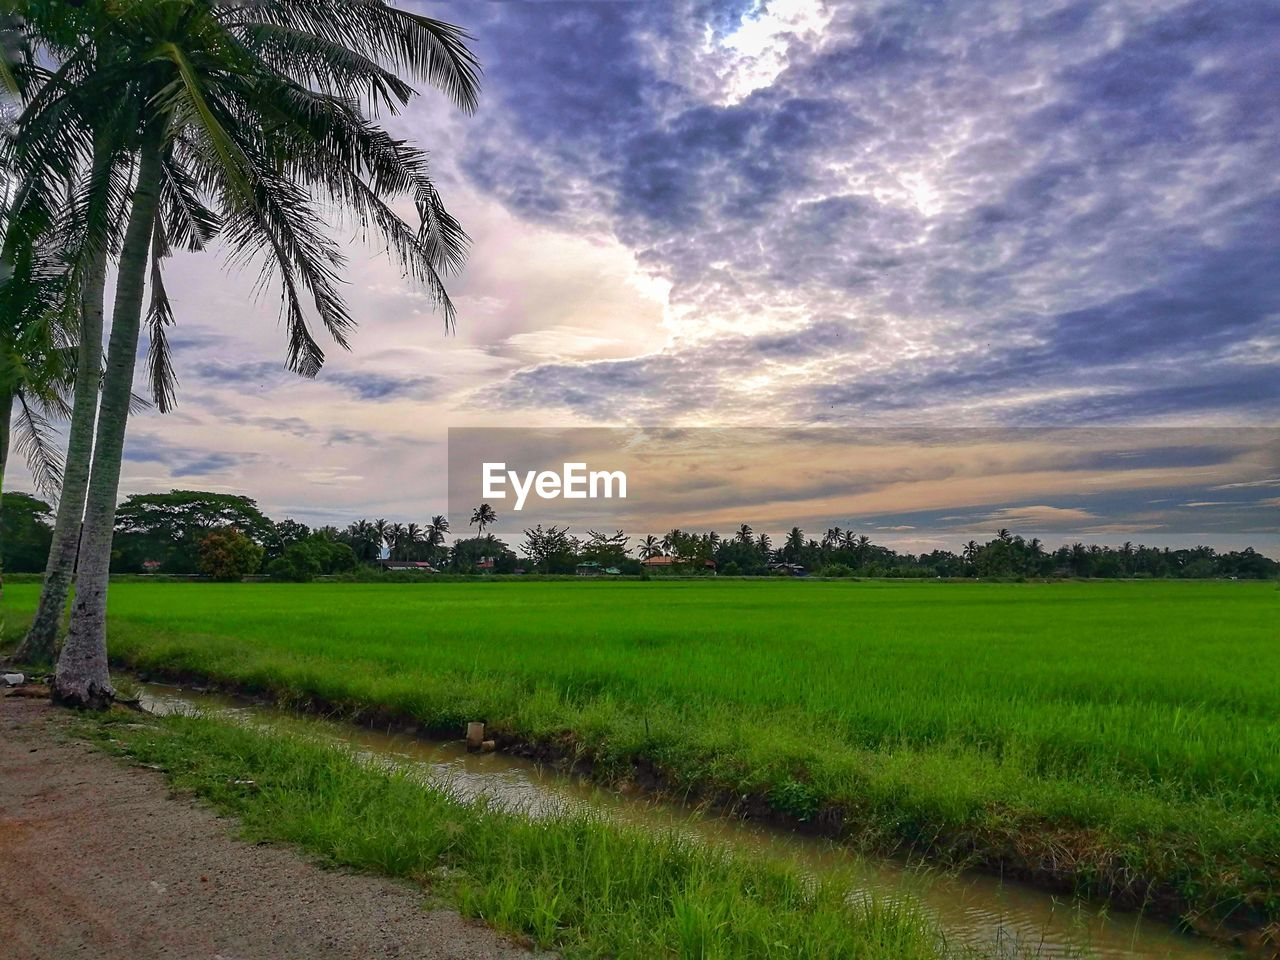 tree, cloud - sky, nature, sky, tranquil scene, palm tree, beauty in nature, scenics, growth, green color, tranquility, field, landscape, no people, agriculture, grass, outdoors, rural scene, rice paddy, day, sunset